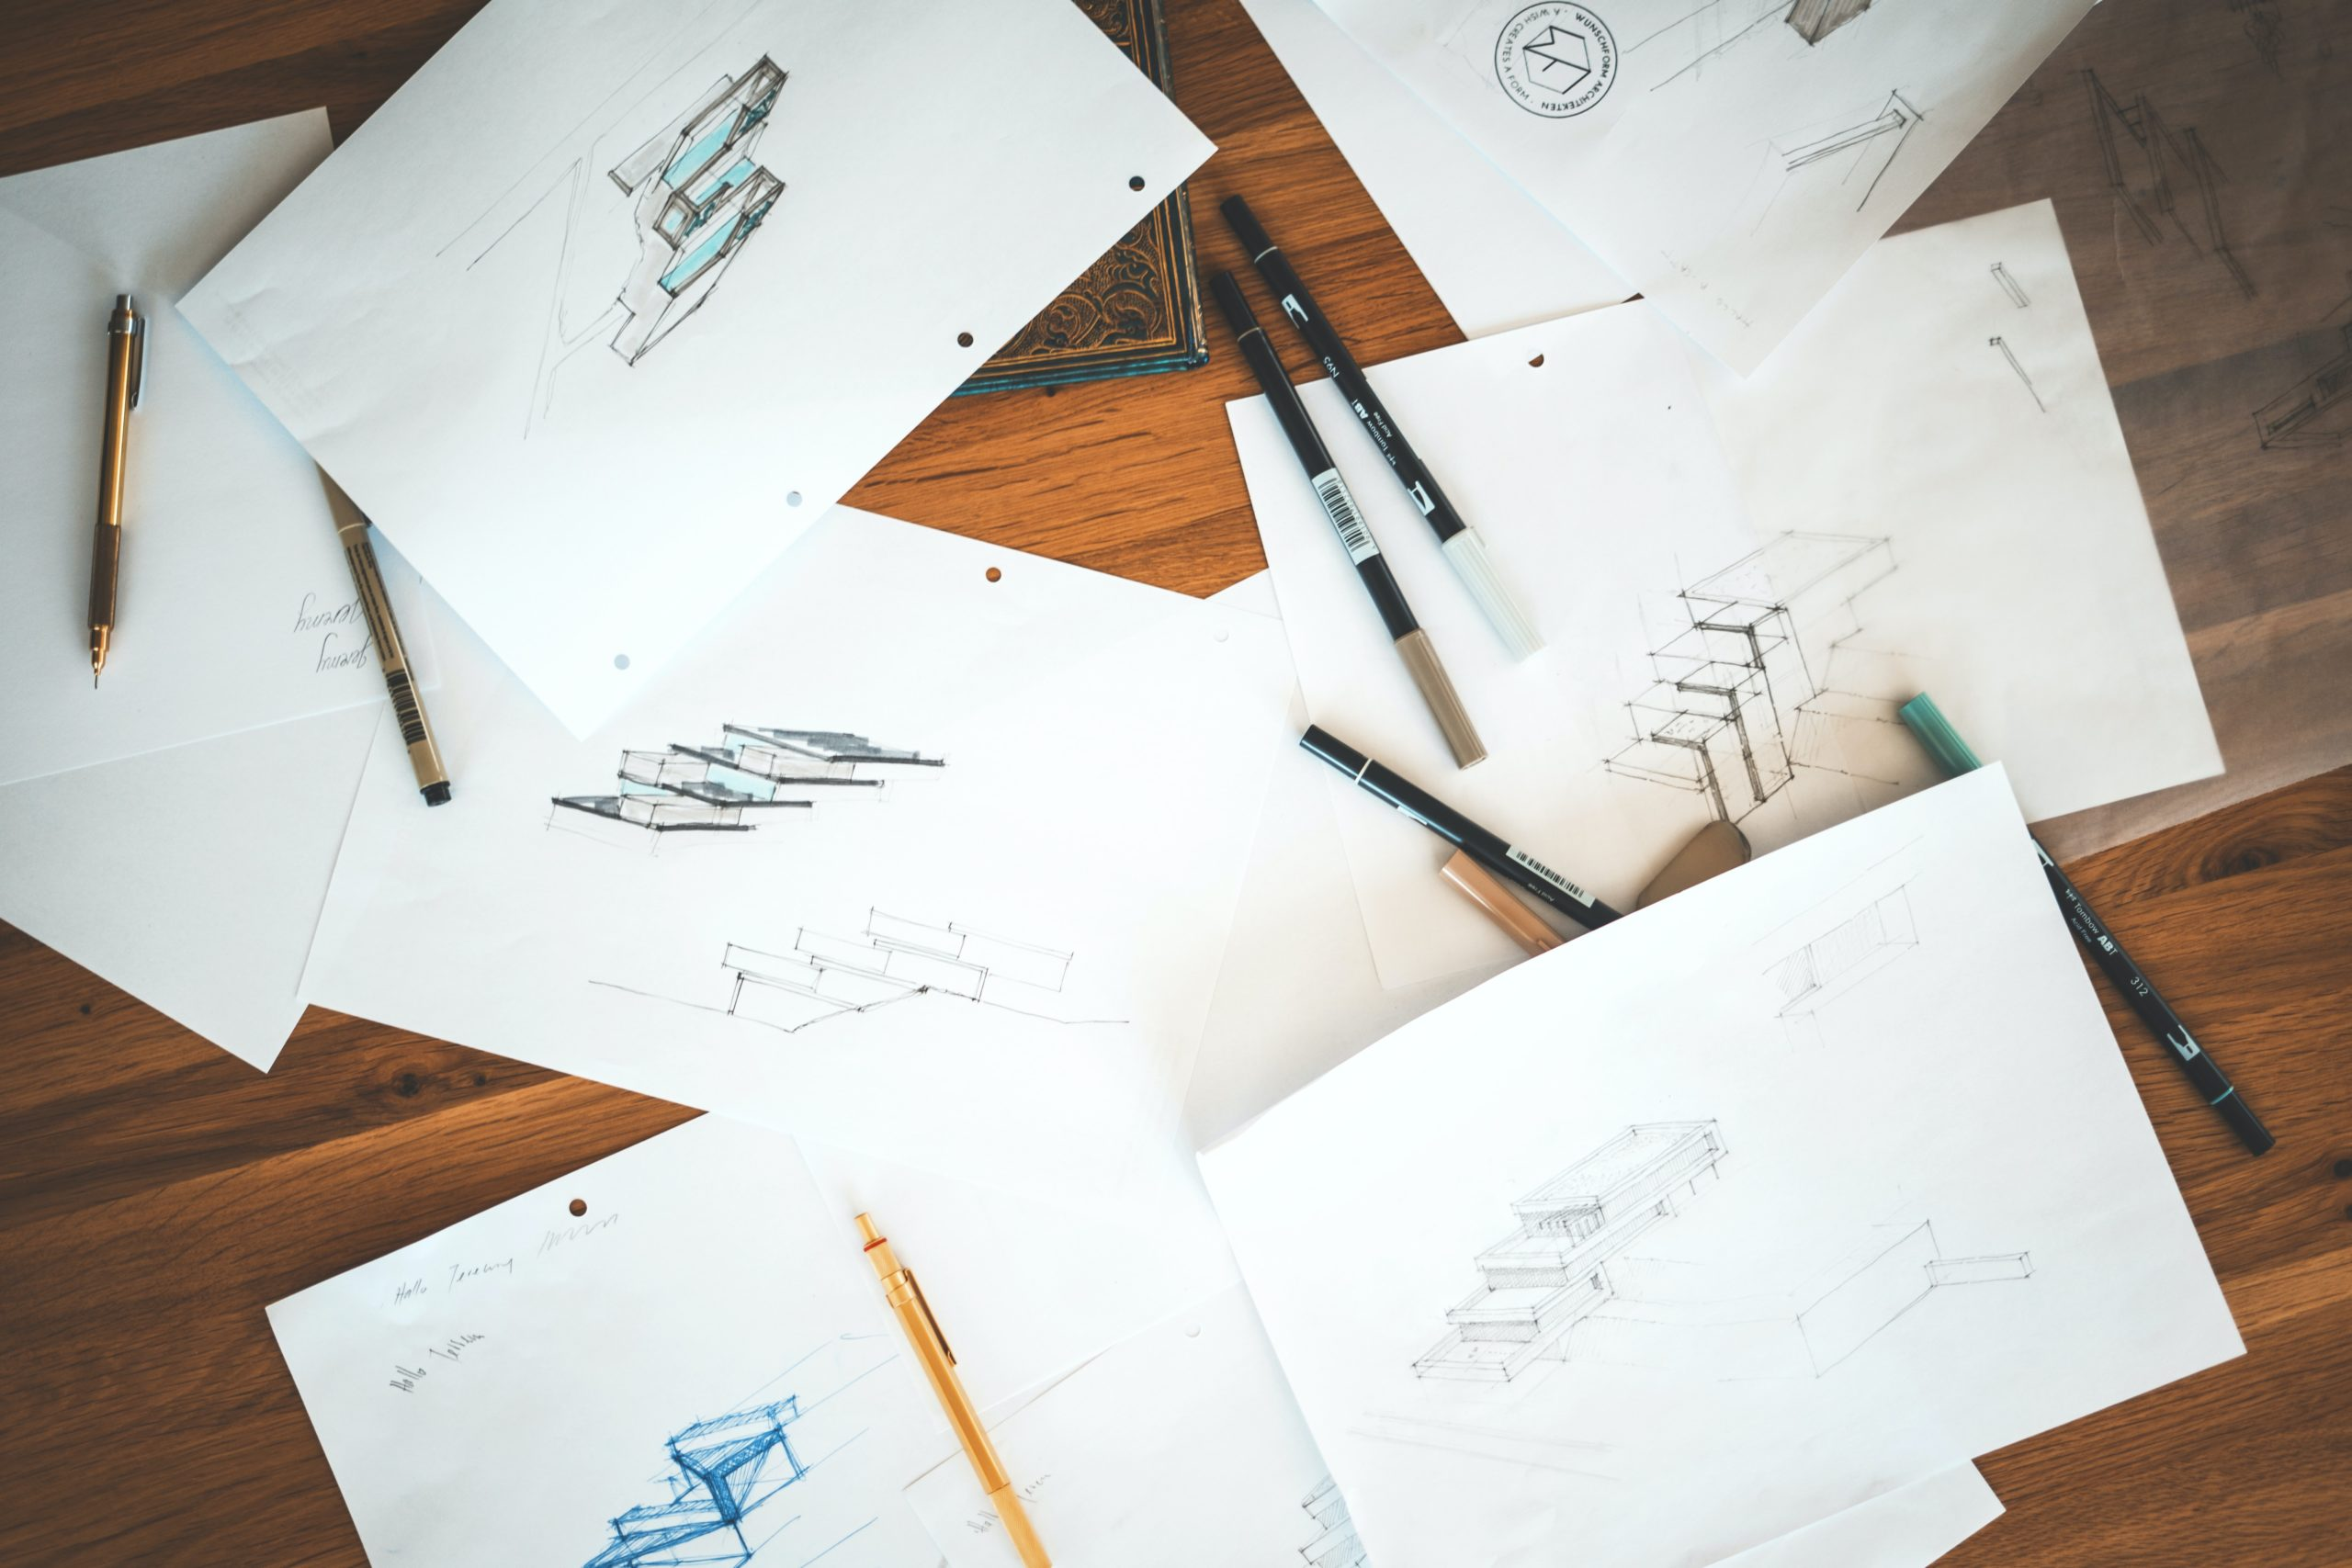 What's new in Sketch this year?